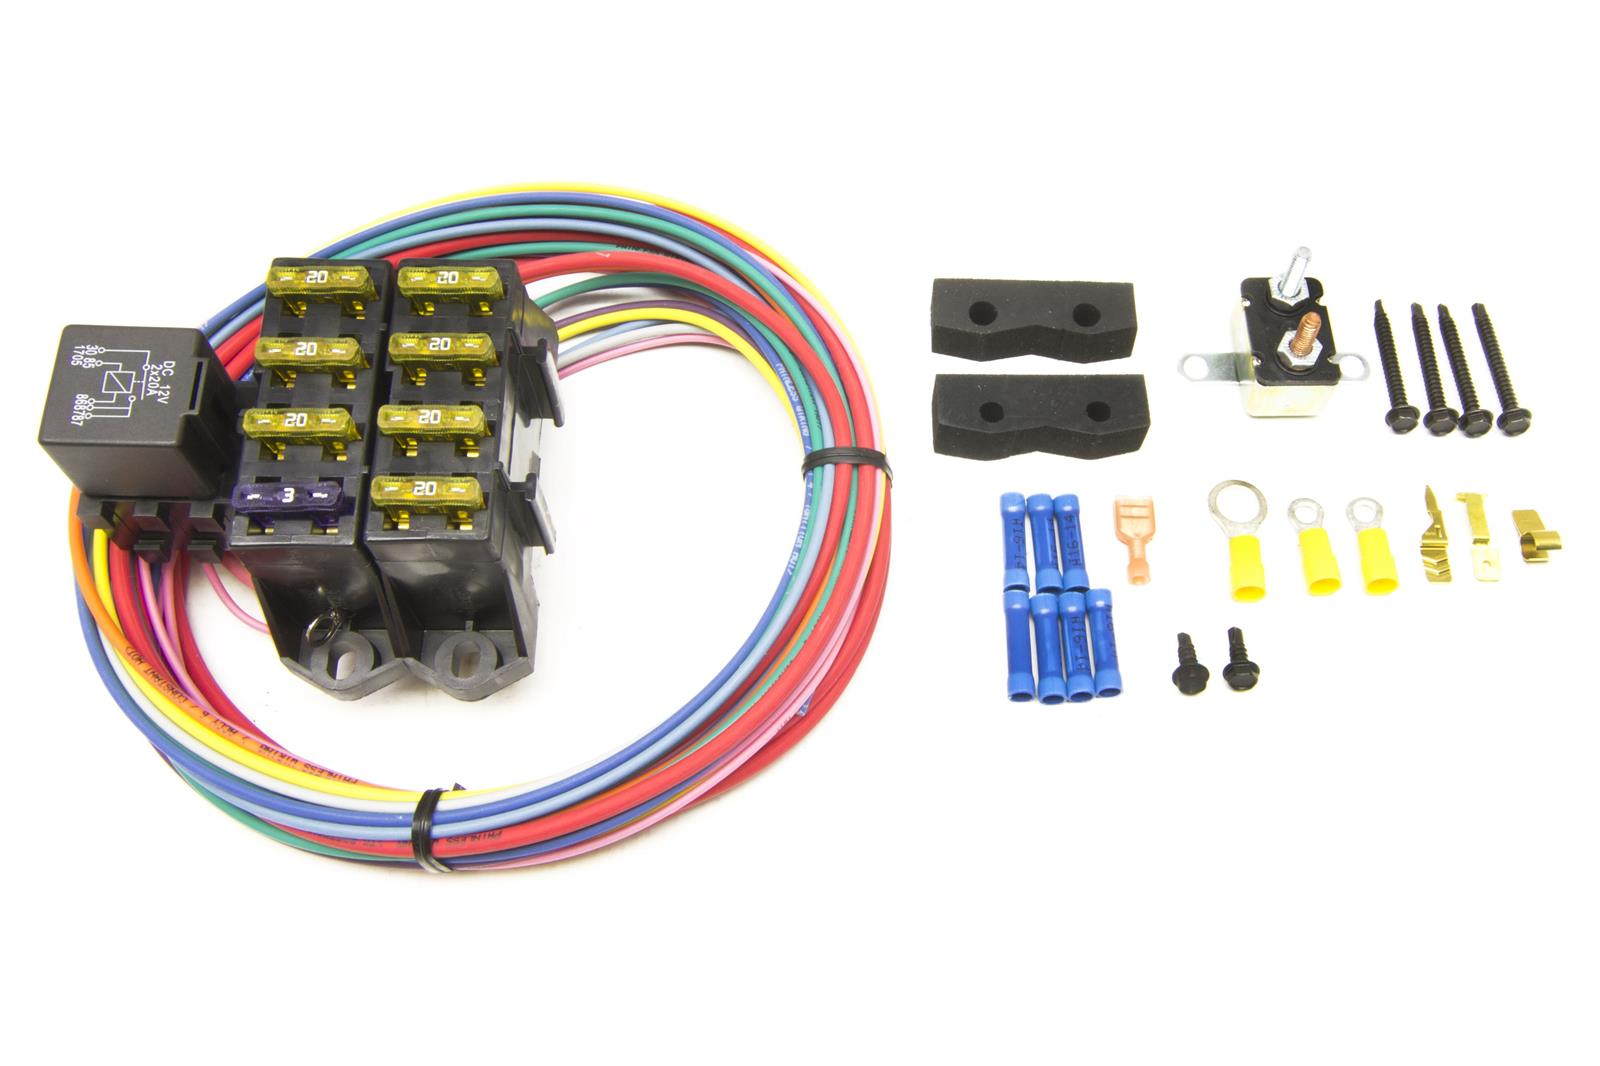 Painless Performance Universal Fuse Blocks 70107 - Free Shipping on Orders  Over $99 at Summit Racing